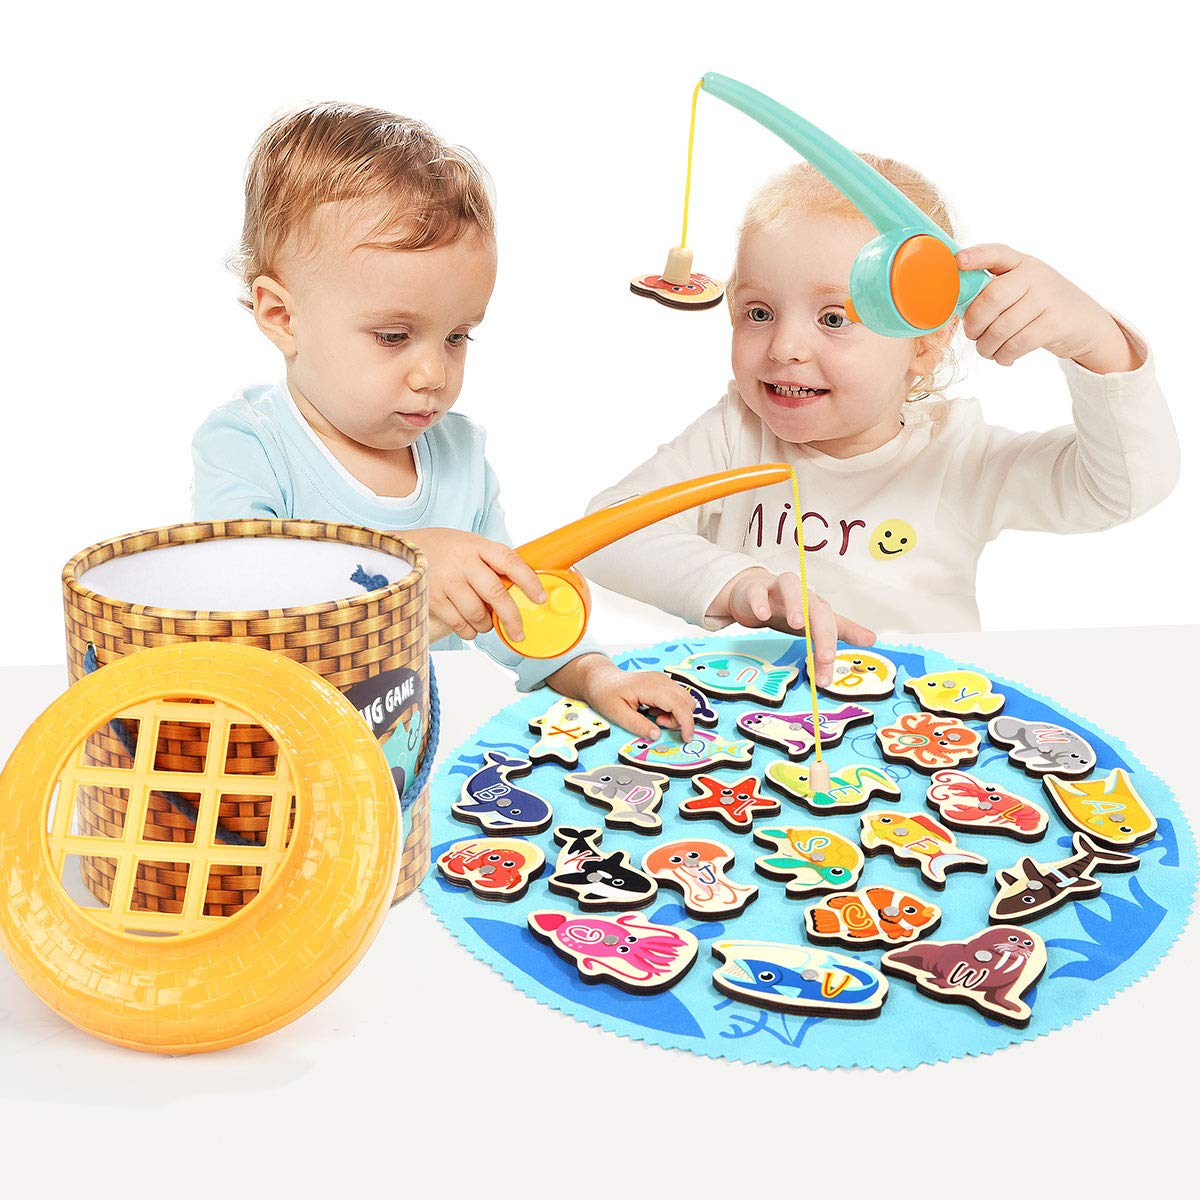 Toys & Hobbies Professional Sale Children Fishing Toy Non-magnetic Toy Kids Fish Educational Toys For Boys Childrens Toy Baby Girls Gift